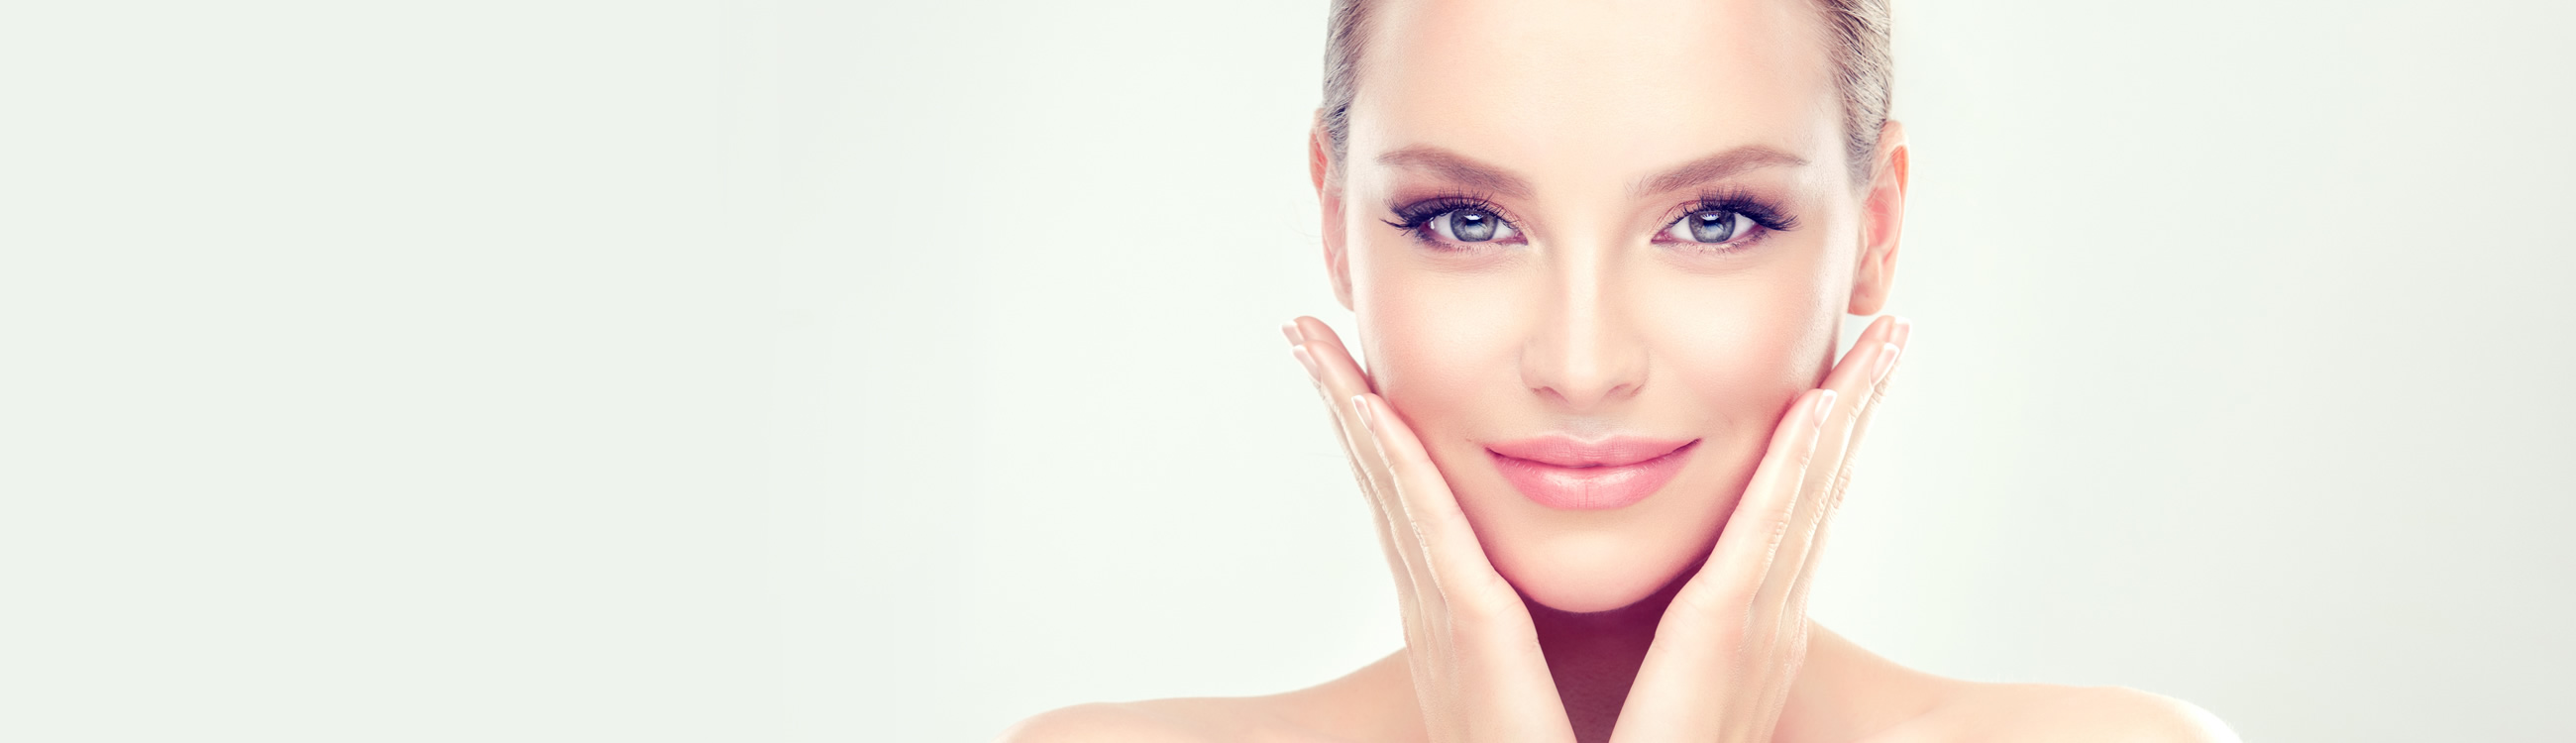 Facial Rejuvenation Treatments at CrownWood MediSpa in Bracknell